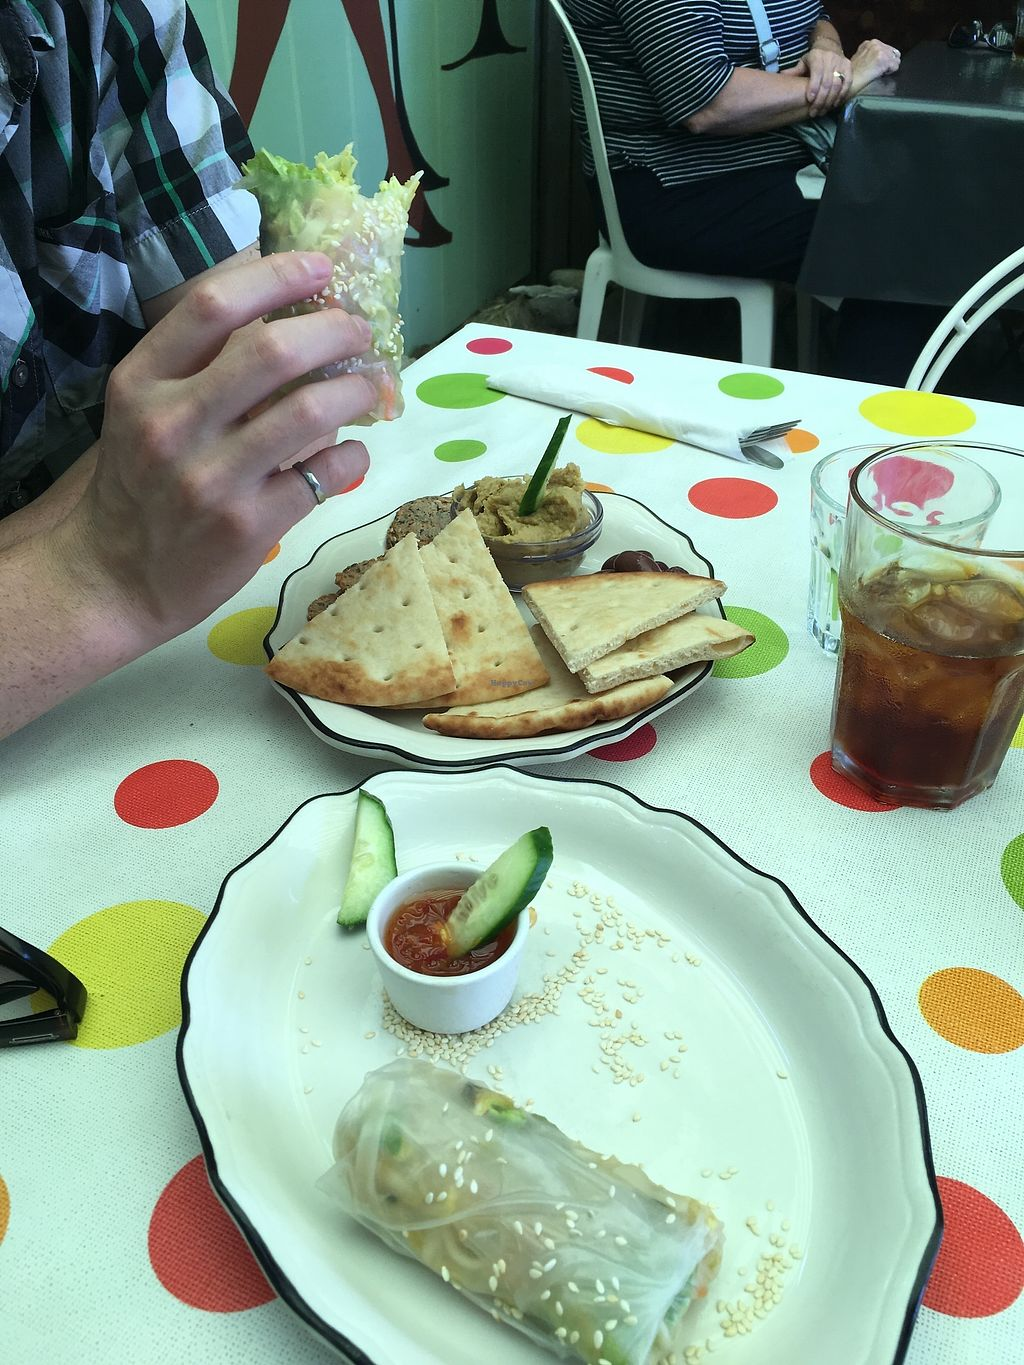 "Photo of Desert Rose Cafe  by <a href=""/members/profile/Cat_Mamma"">Cat_Mamma</a> <br/>The Quick Fix (hummus, olives, and flatbread) and Salad Spring Rolls. Both vegan! <br/> July 4, 2017  - <a href='/contact/abuse/image/64661/276513'>Report</a>"